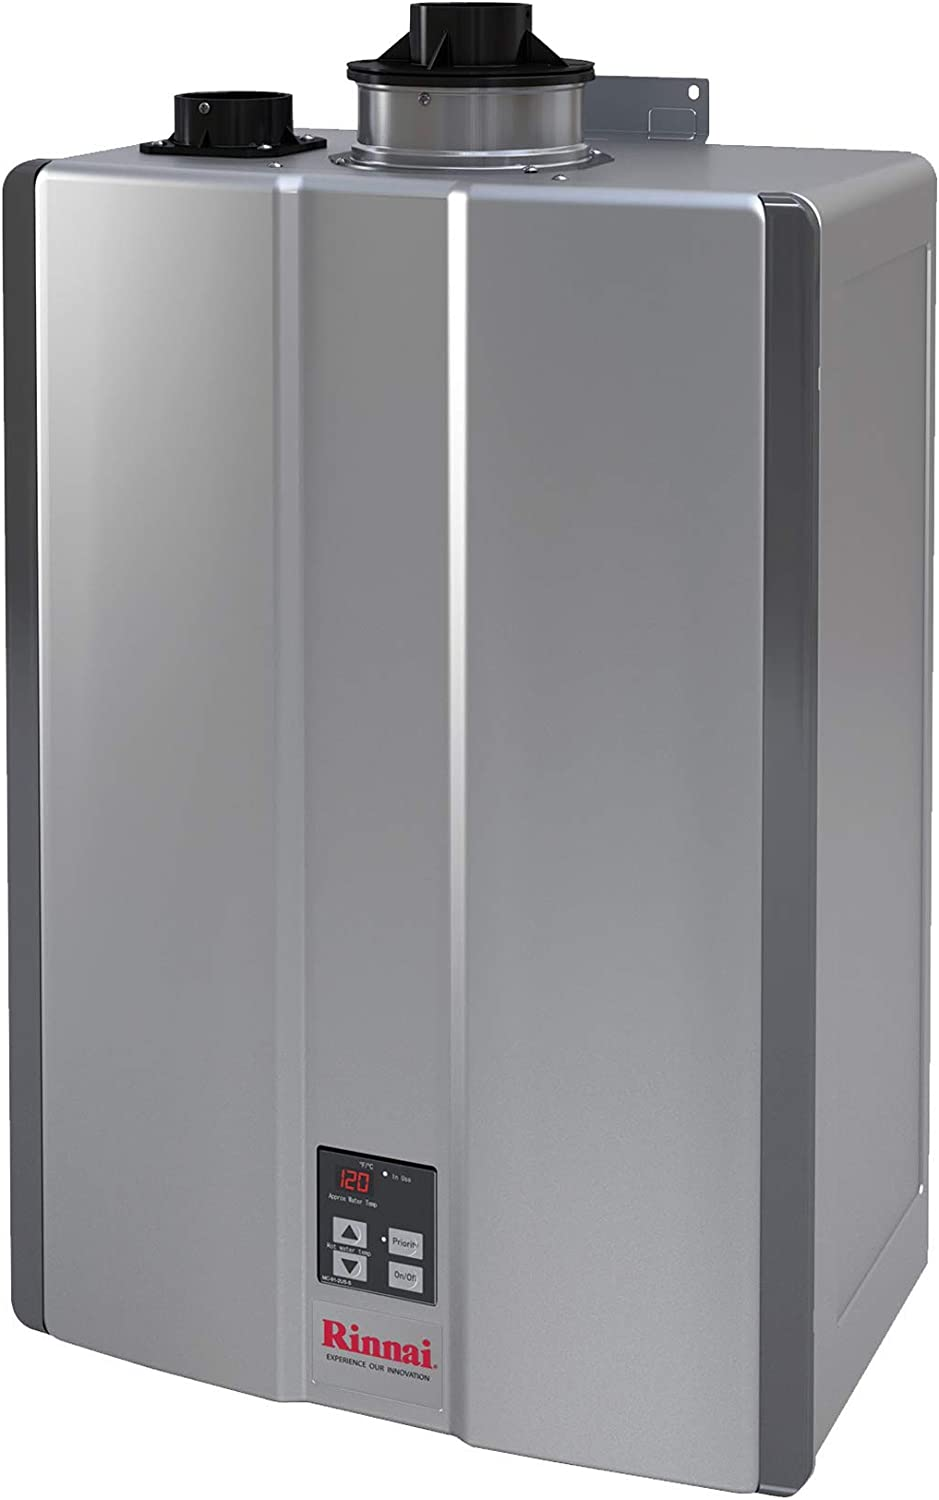 Rinnai RU Series Sensei SE+ Tankless Hot Water Heater: Indoor Installation, RU160ip - Propane/9 GPM